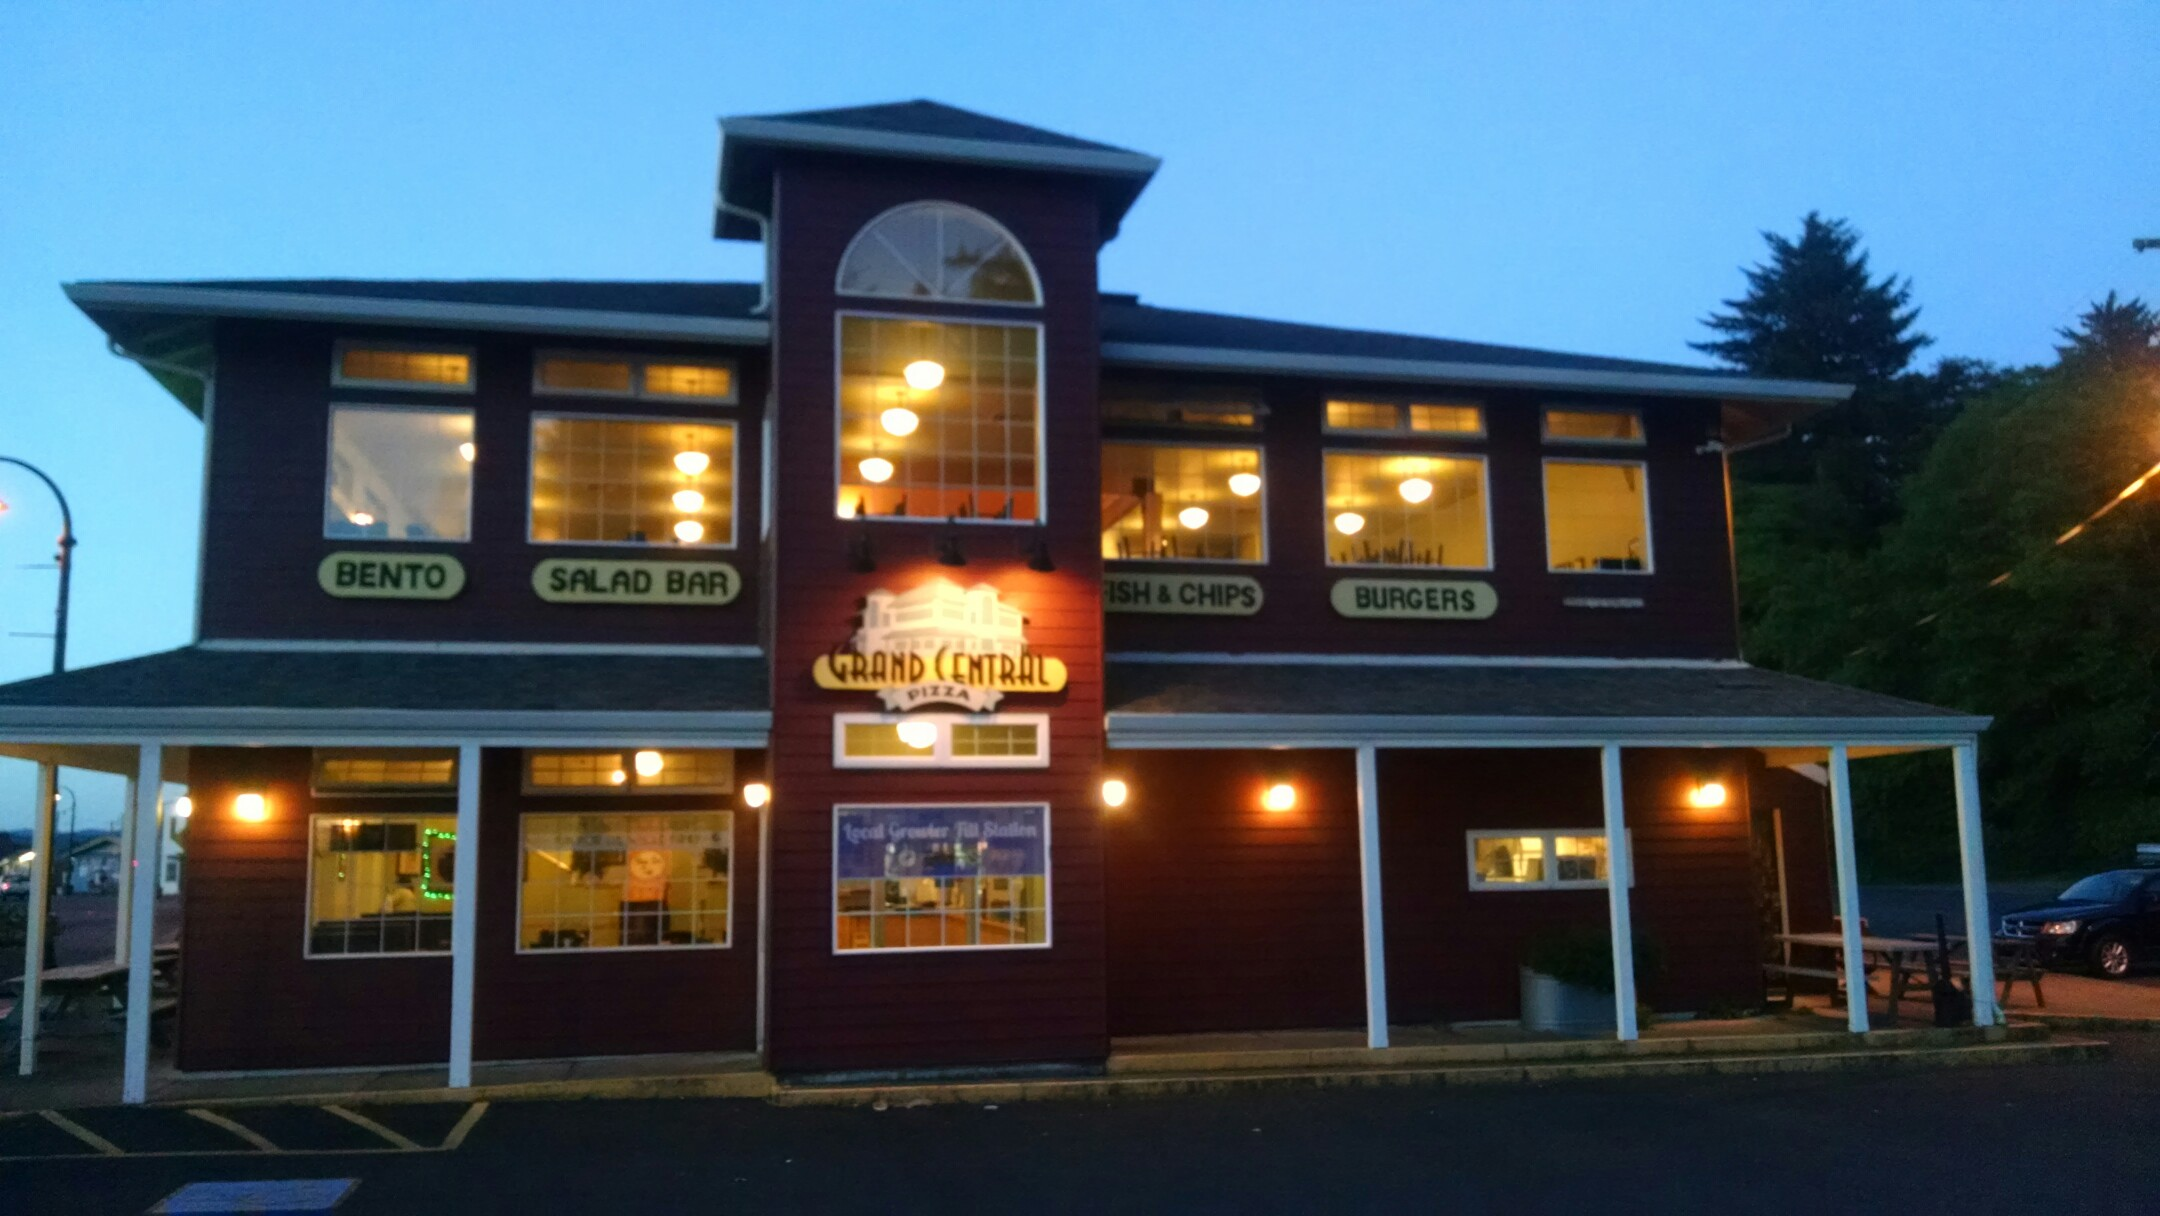 Grand Central Pizza, Waldport OR